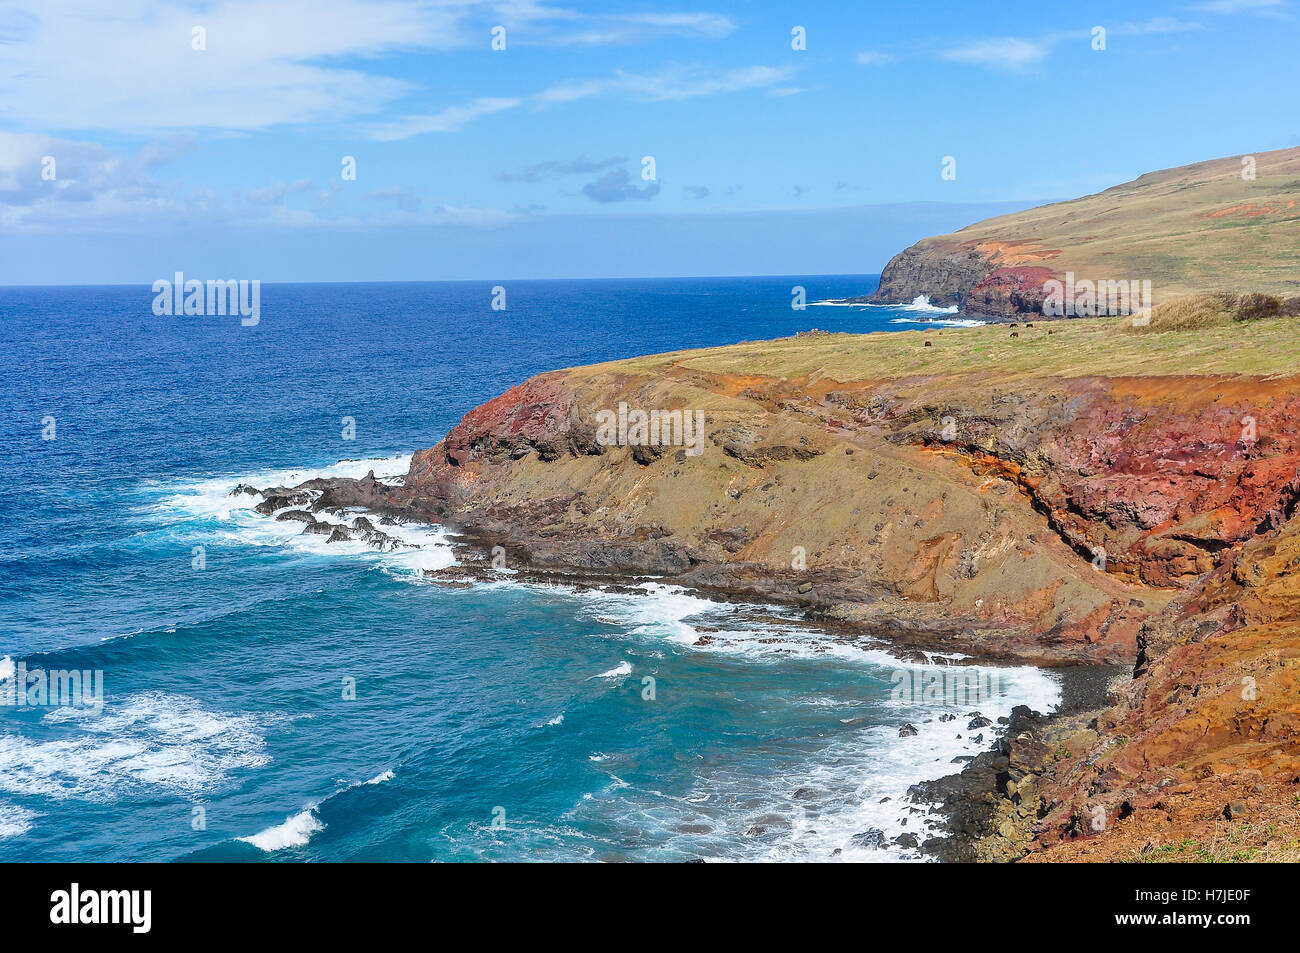 Rough coastal landscape in Easter Island, Chile - Stock Image